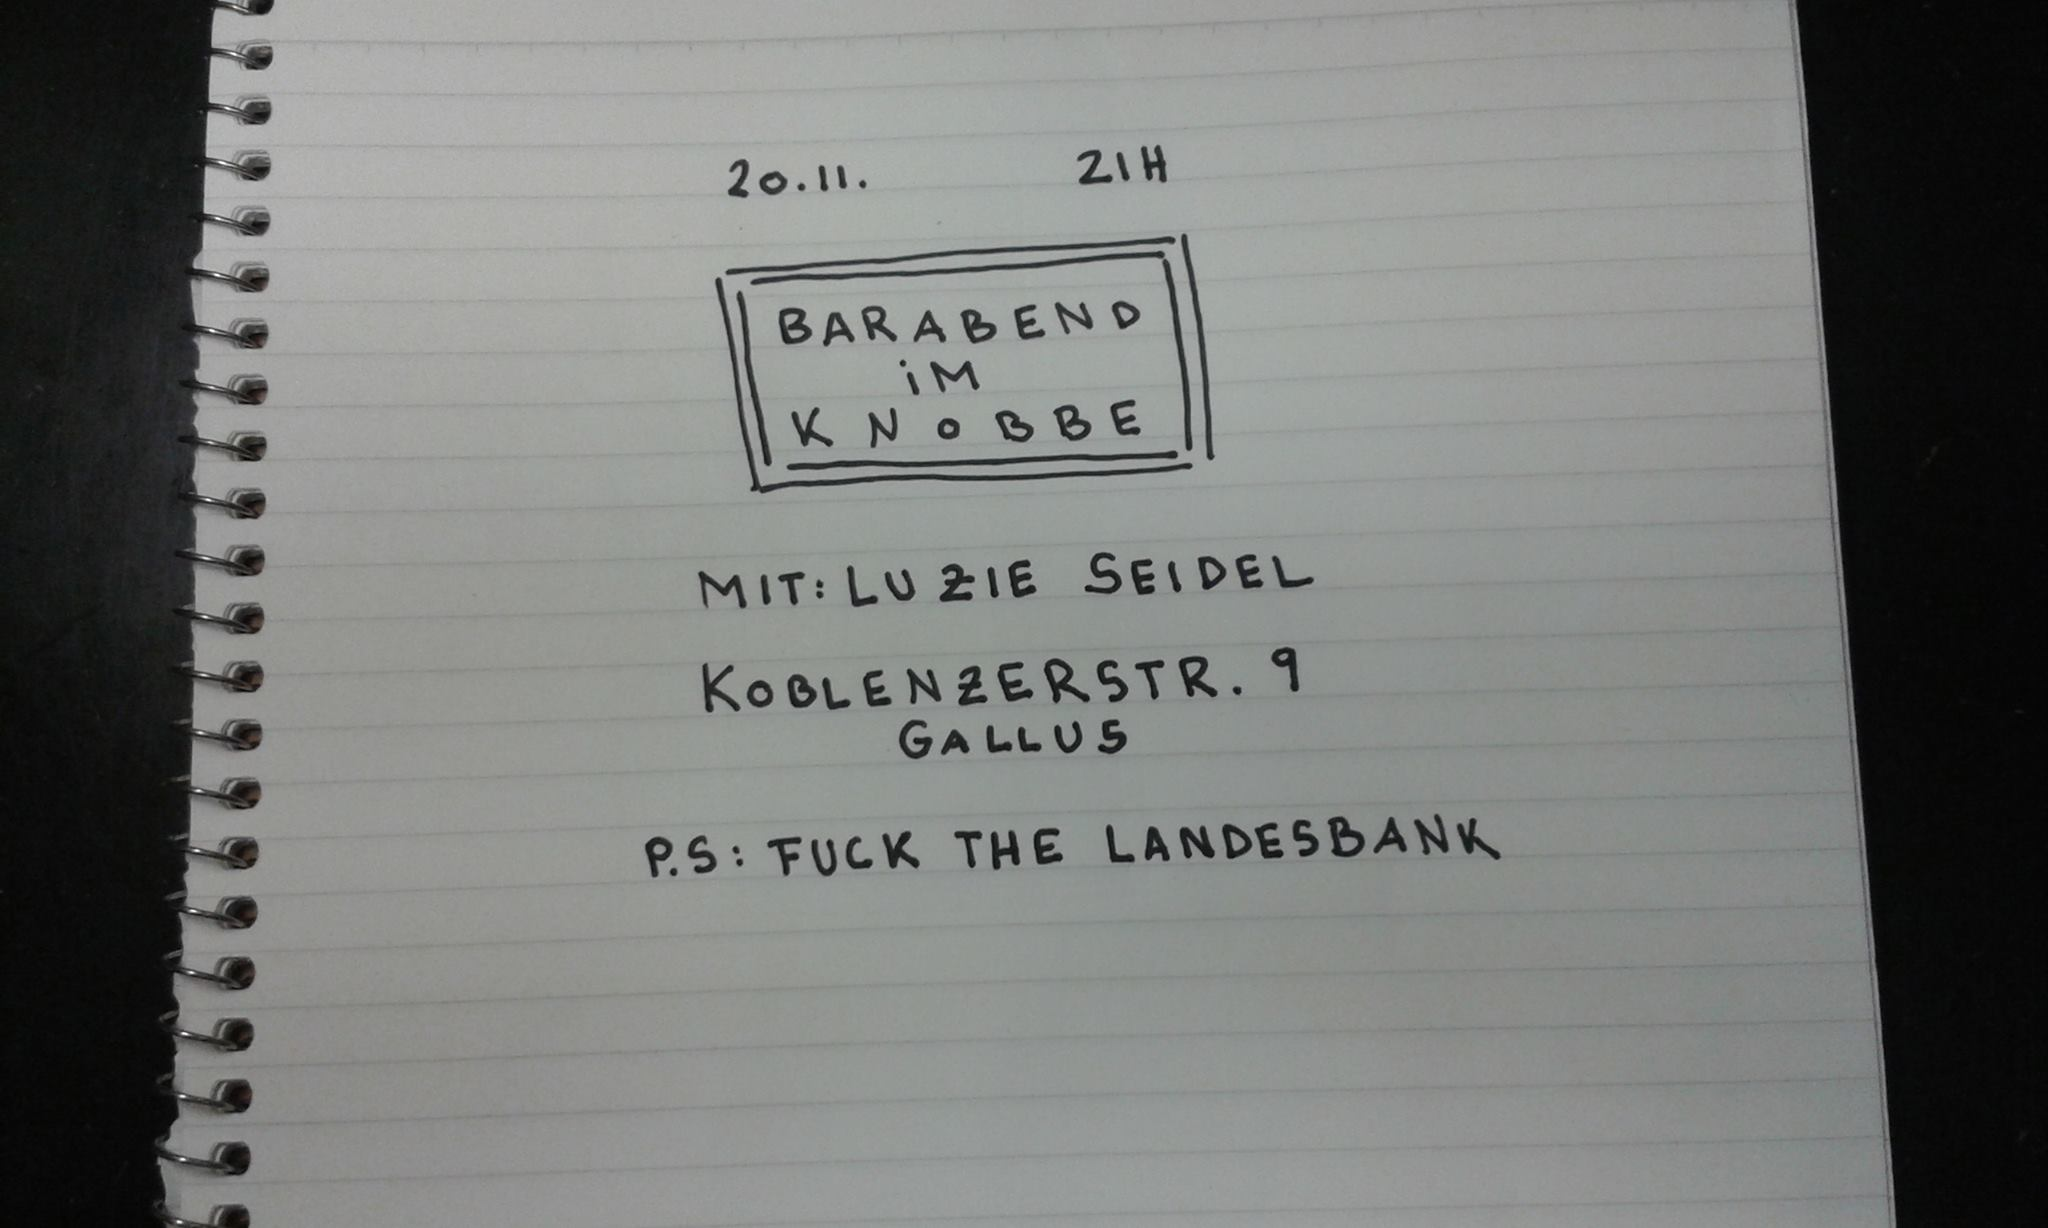 Fuck the Landes Bank